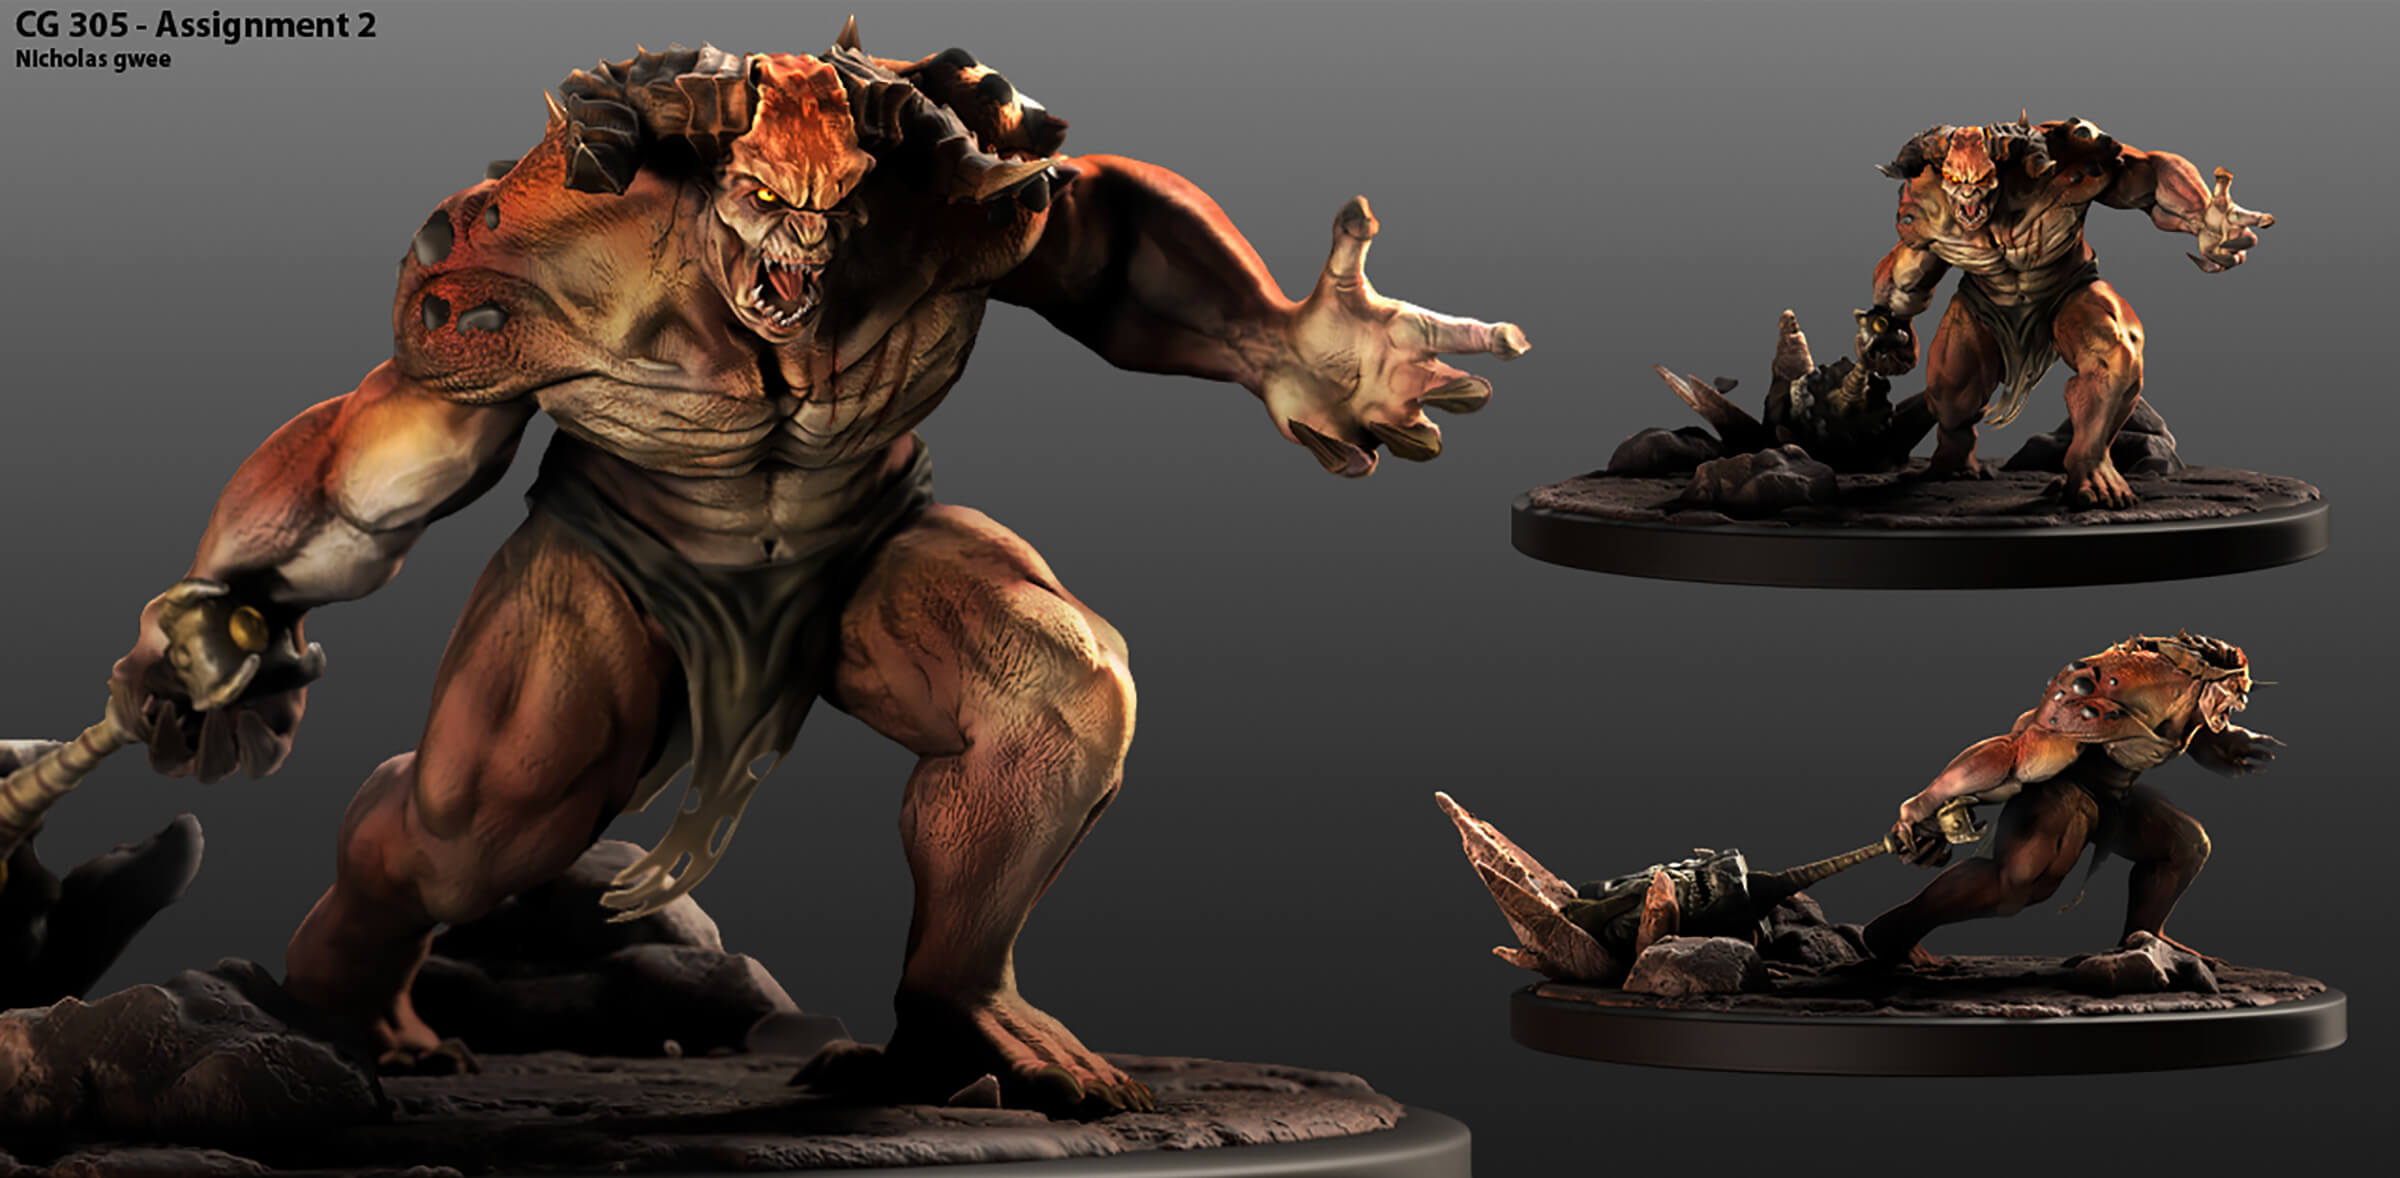 various views of a 3D model of a giant ogre character